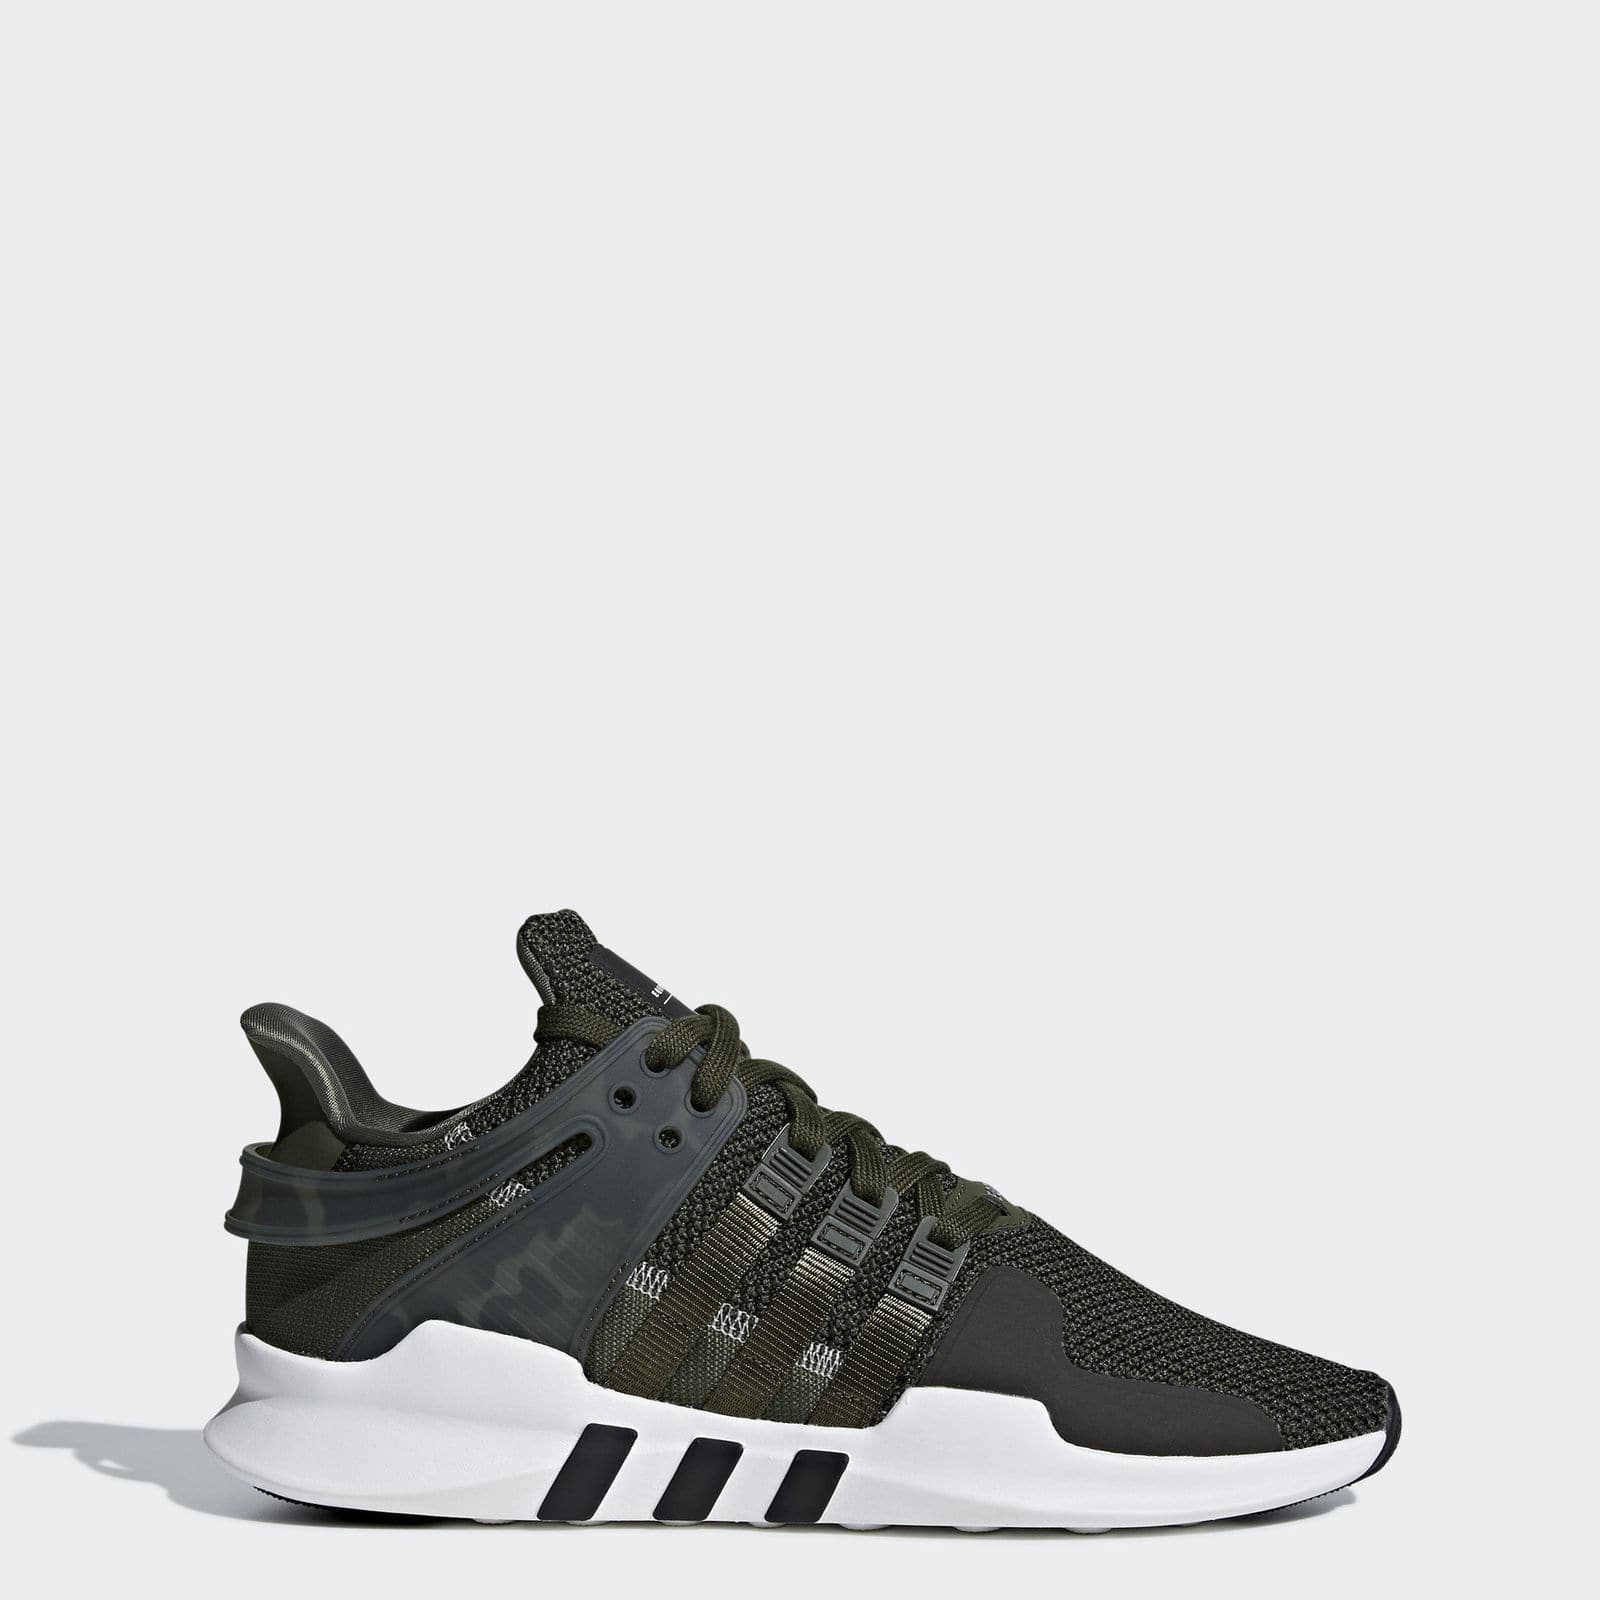 adidas EQT Support ADV Men's Shoes (Night Cargo/Cloud White) $48 + Free Shipping